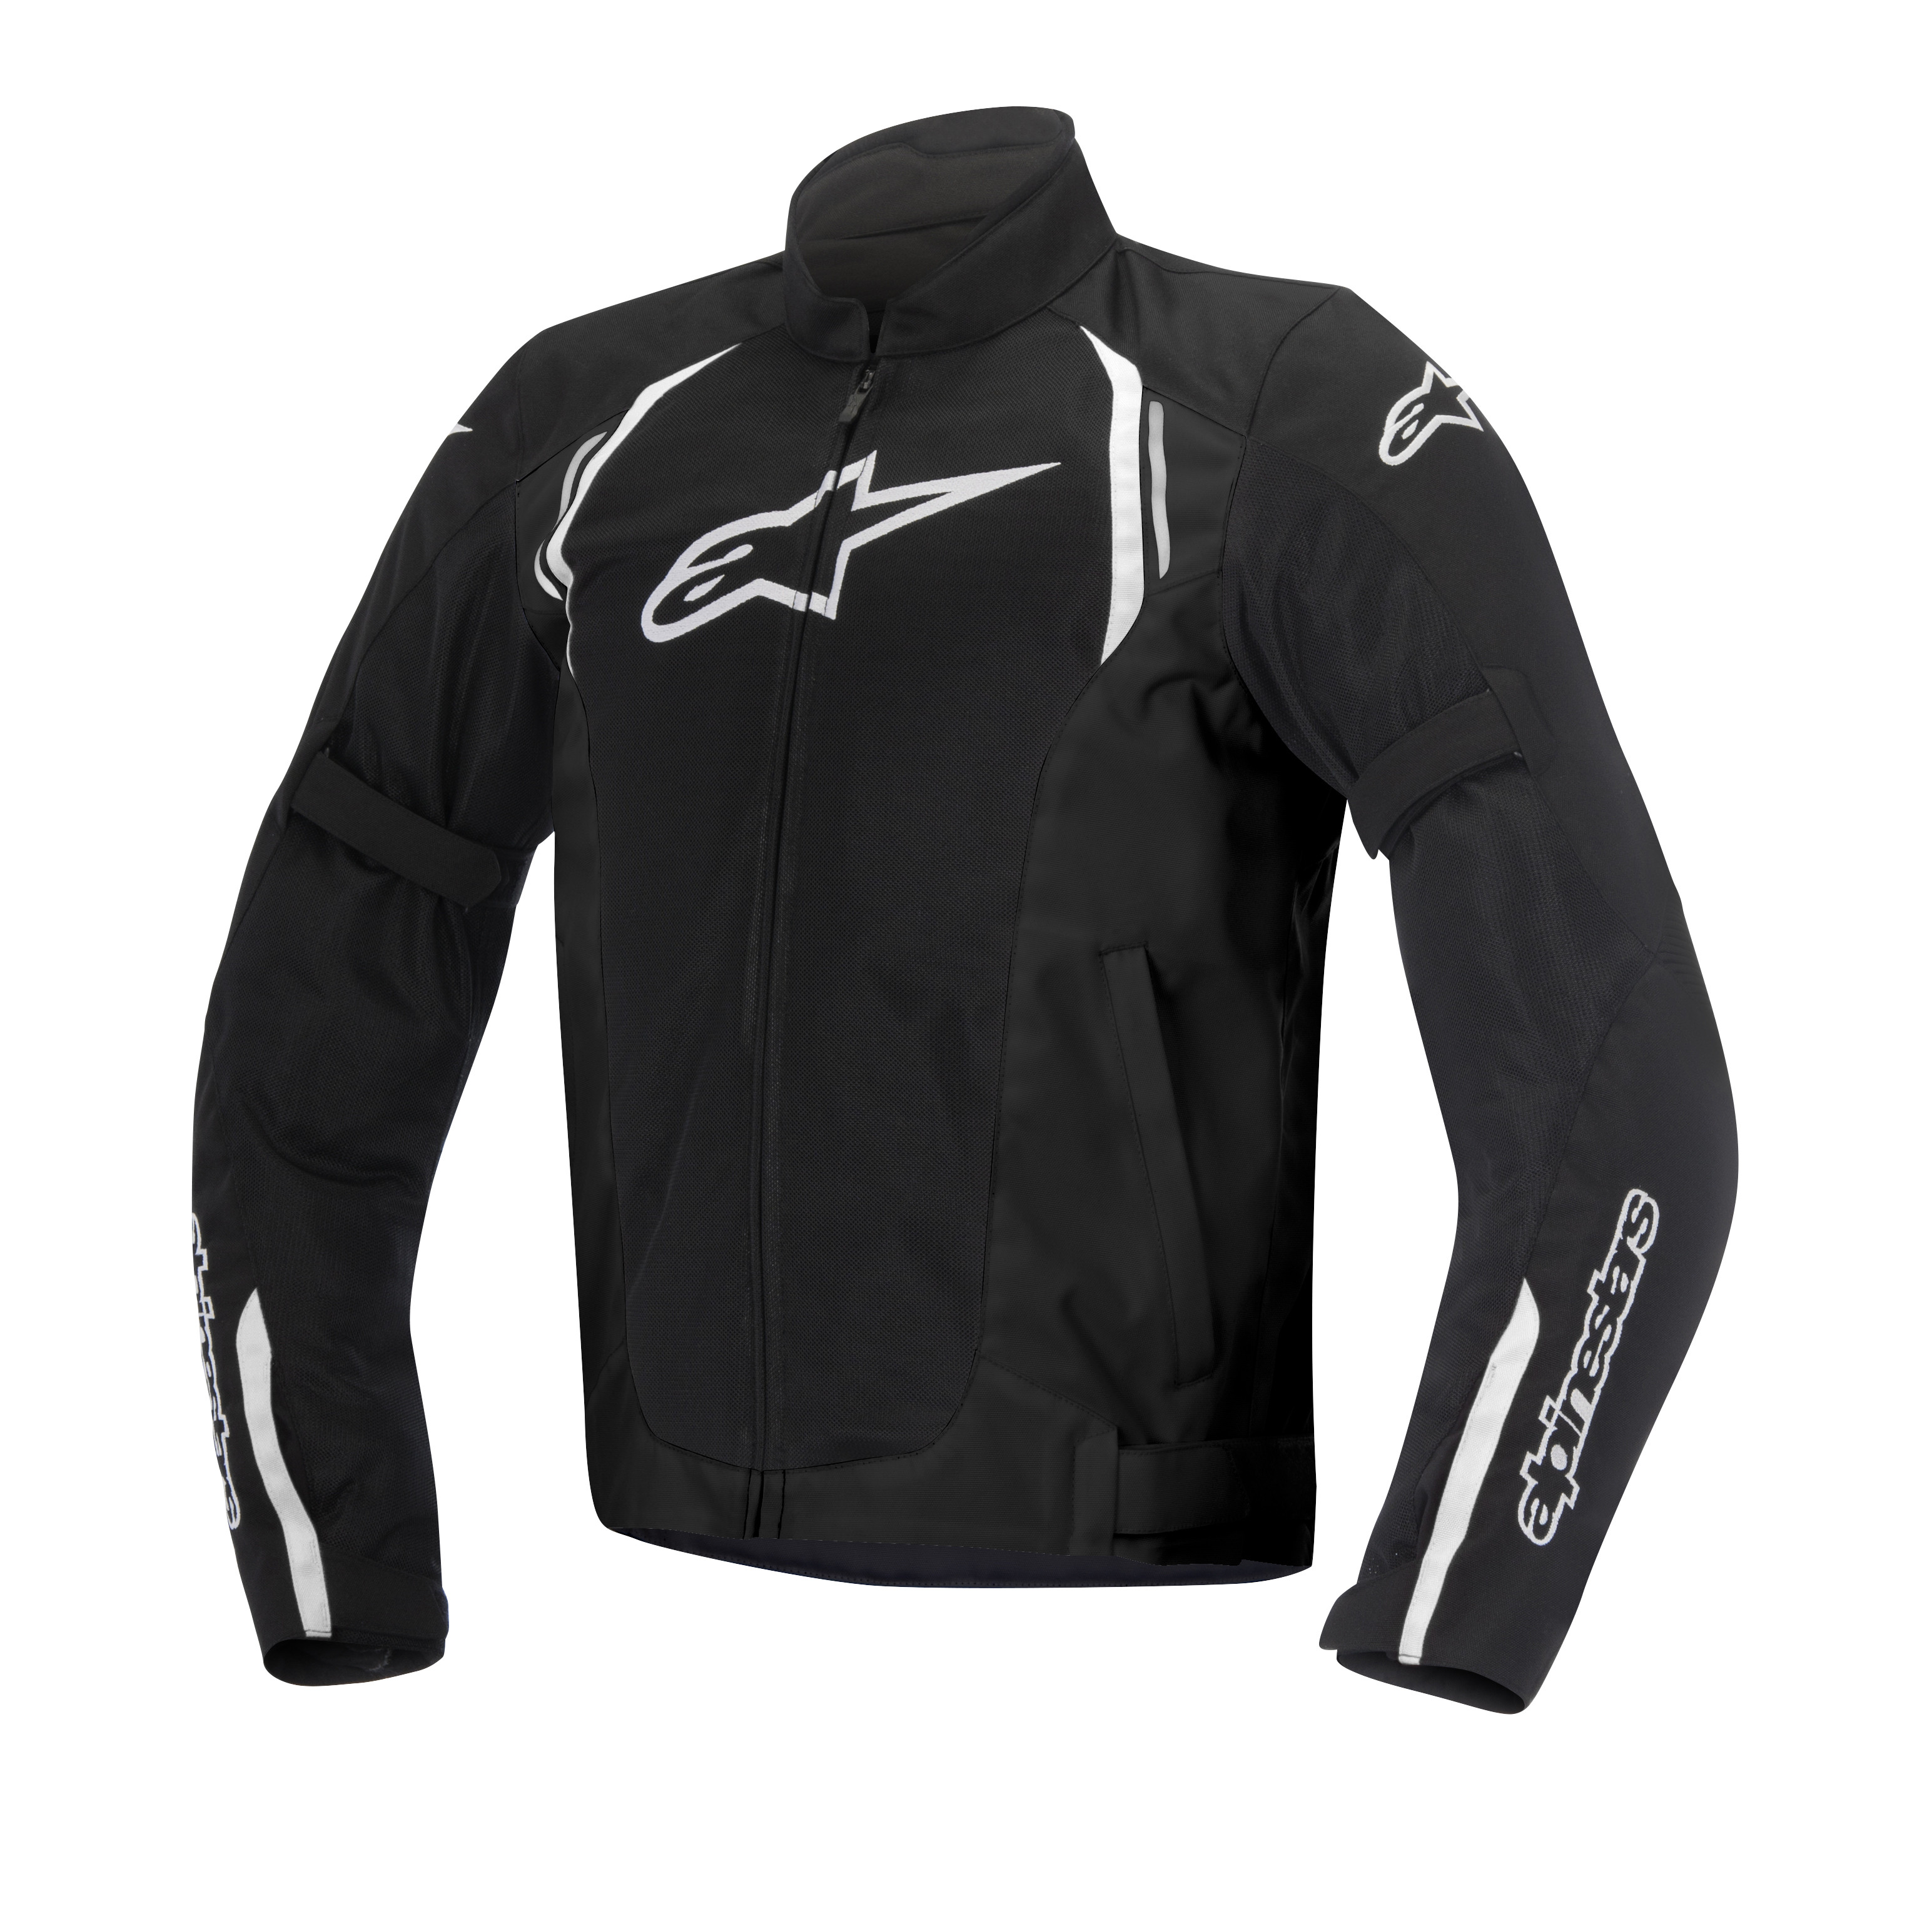 competitive price 78036 c99d9 Giacca moto Alpinestars Ast Air TX nera